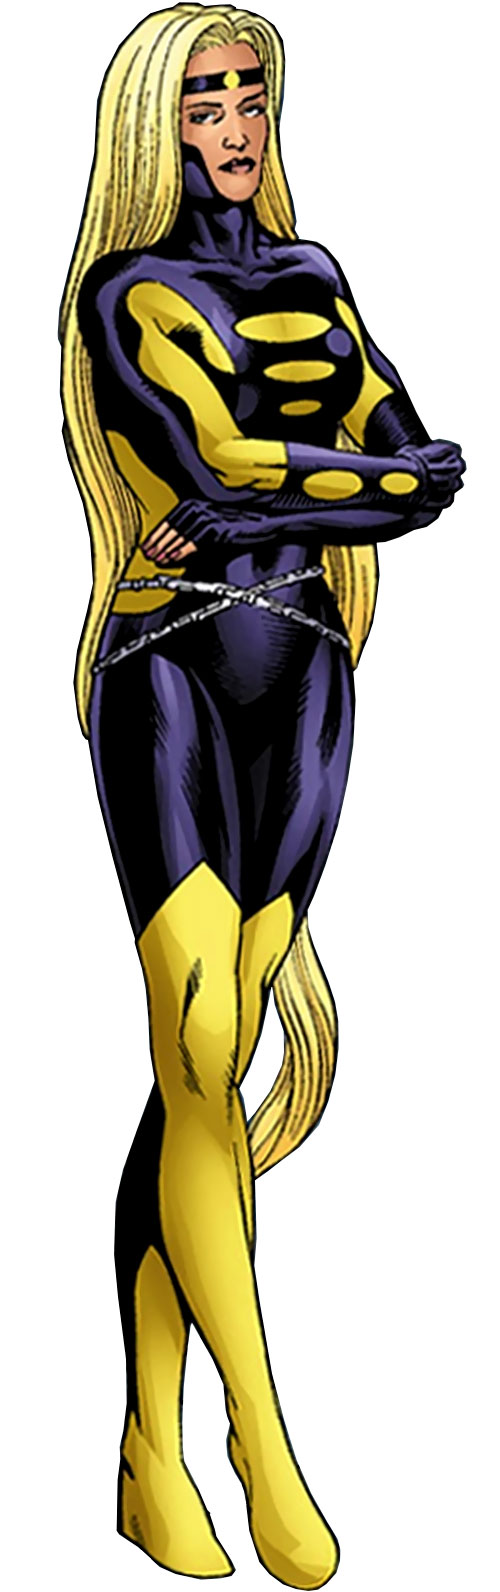 Moonstone / Meteorite of the Thunderbolts (Marvel Comics) yellow and deep purple costume